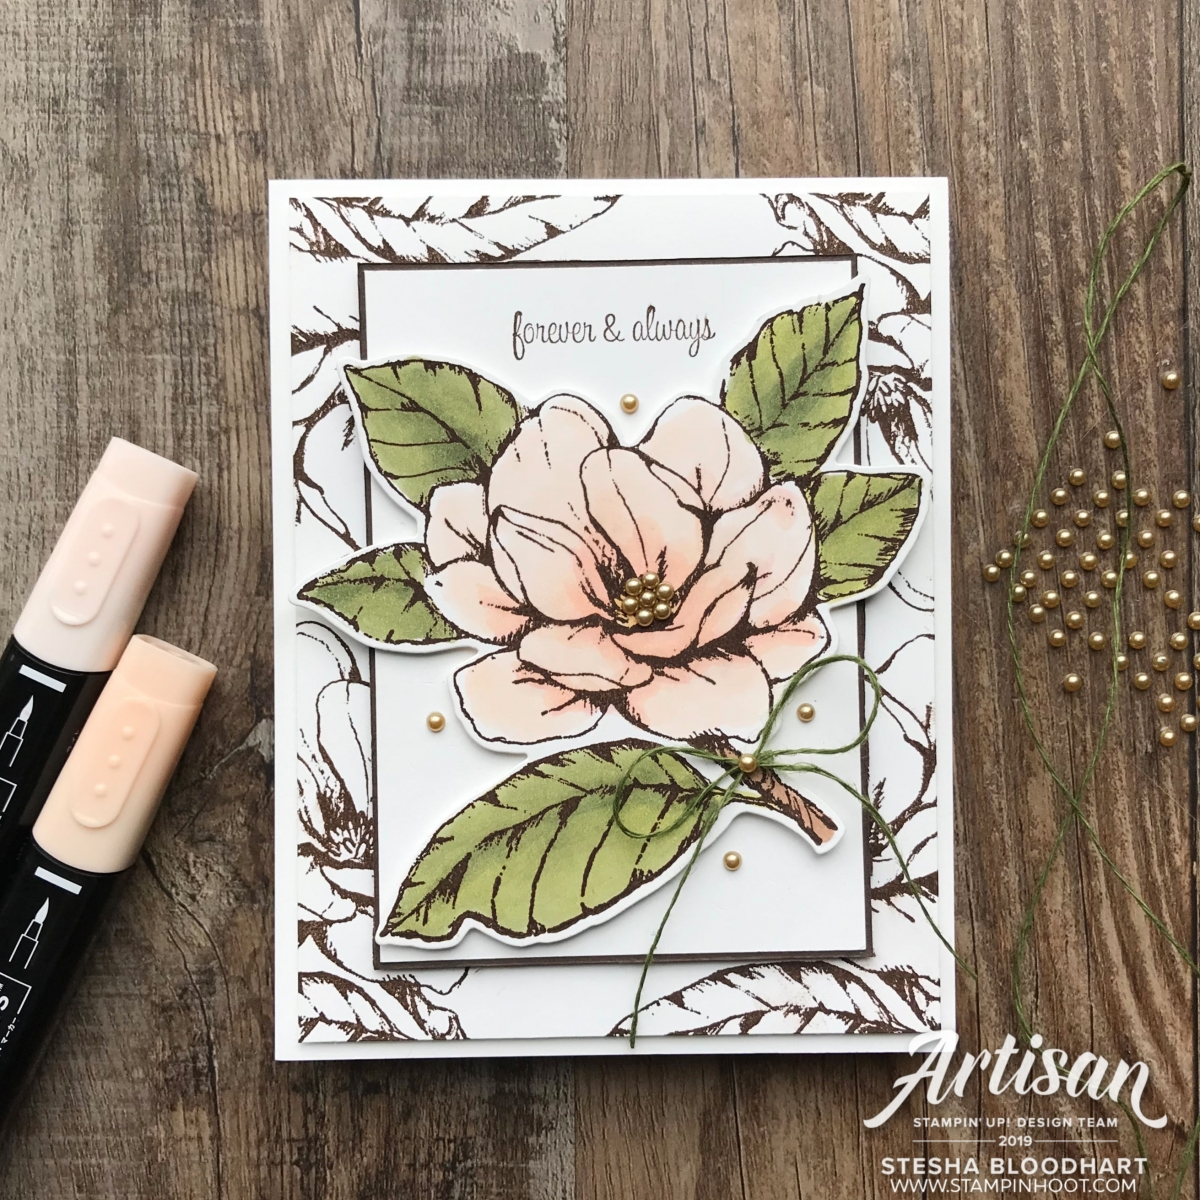 Good Morning Magnolia Bundle by Stampin' Up! Card by Stesha Bloodhart, Stampin' Hoot!#GDP211 Challenge Theme Happily Every After